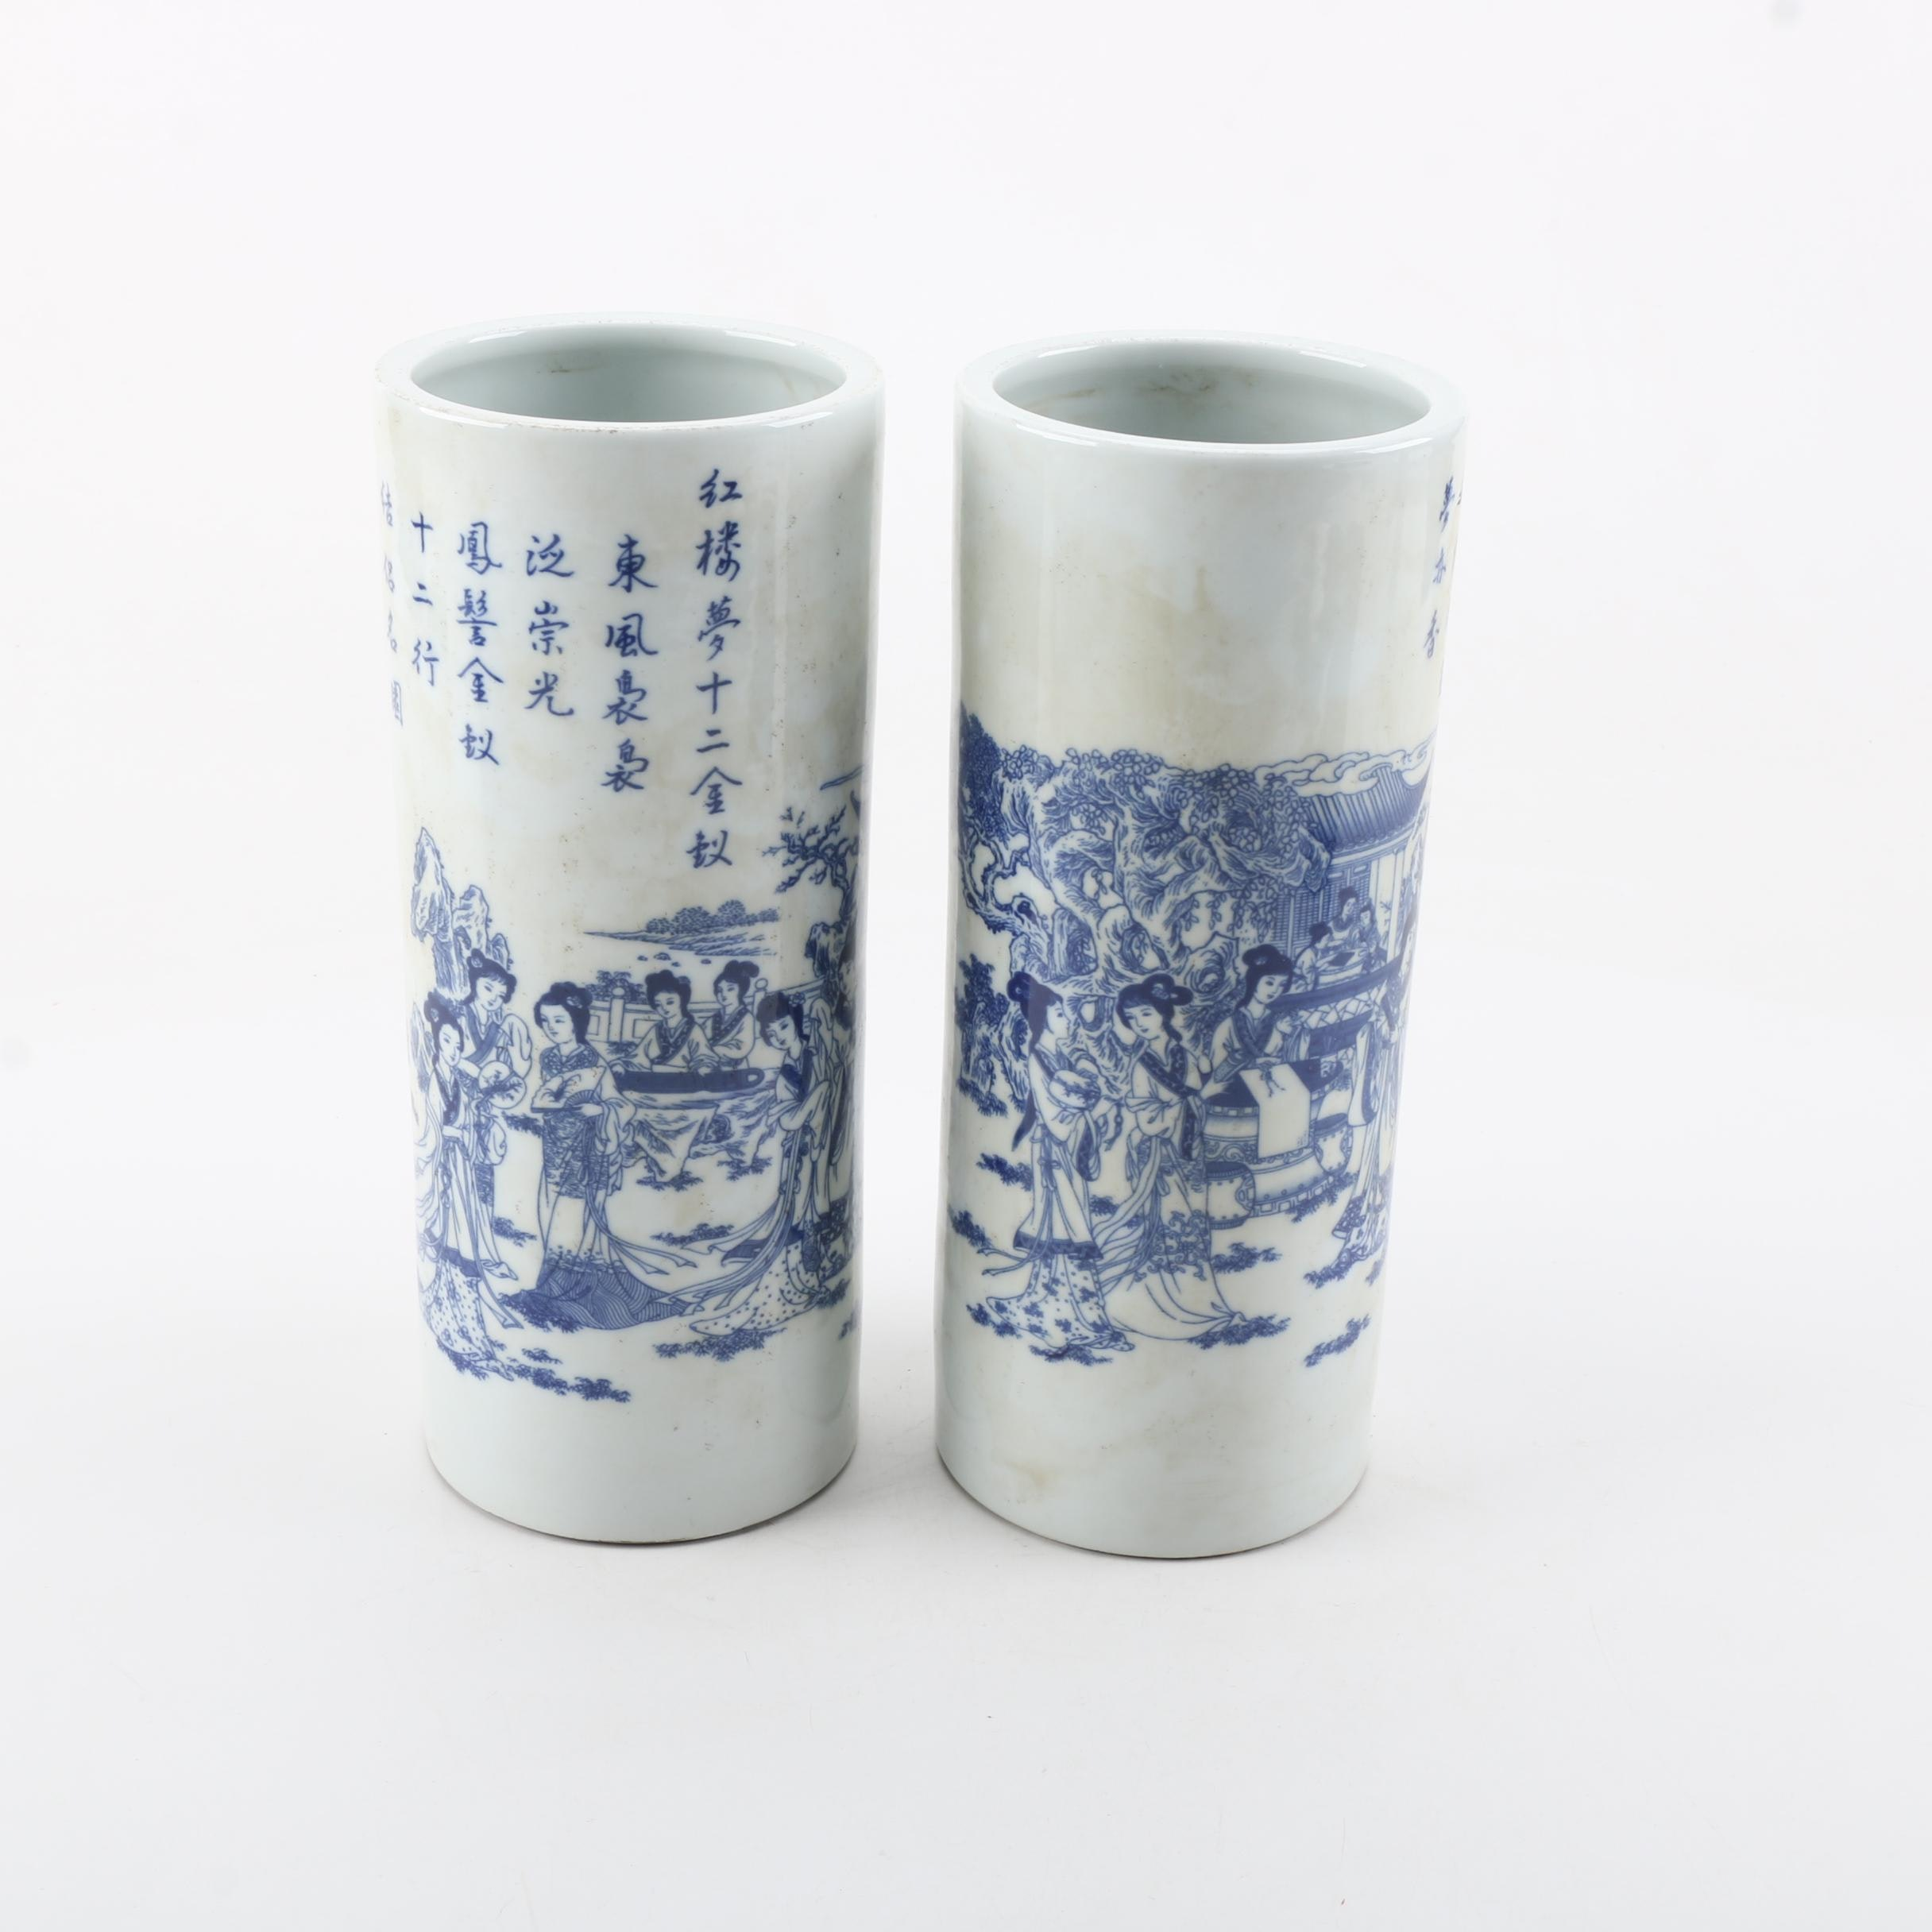 Pair of White and Blue Chinese Vases